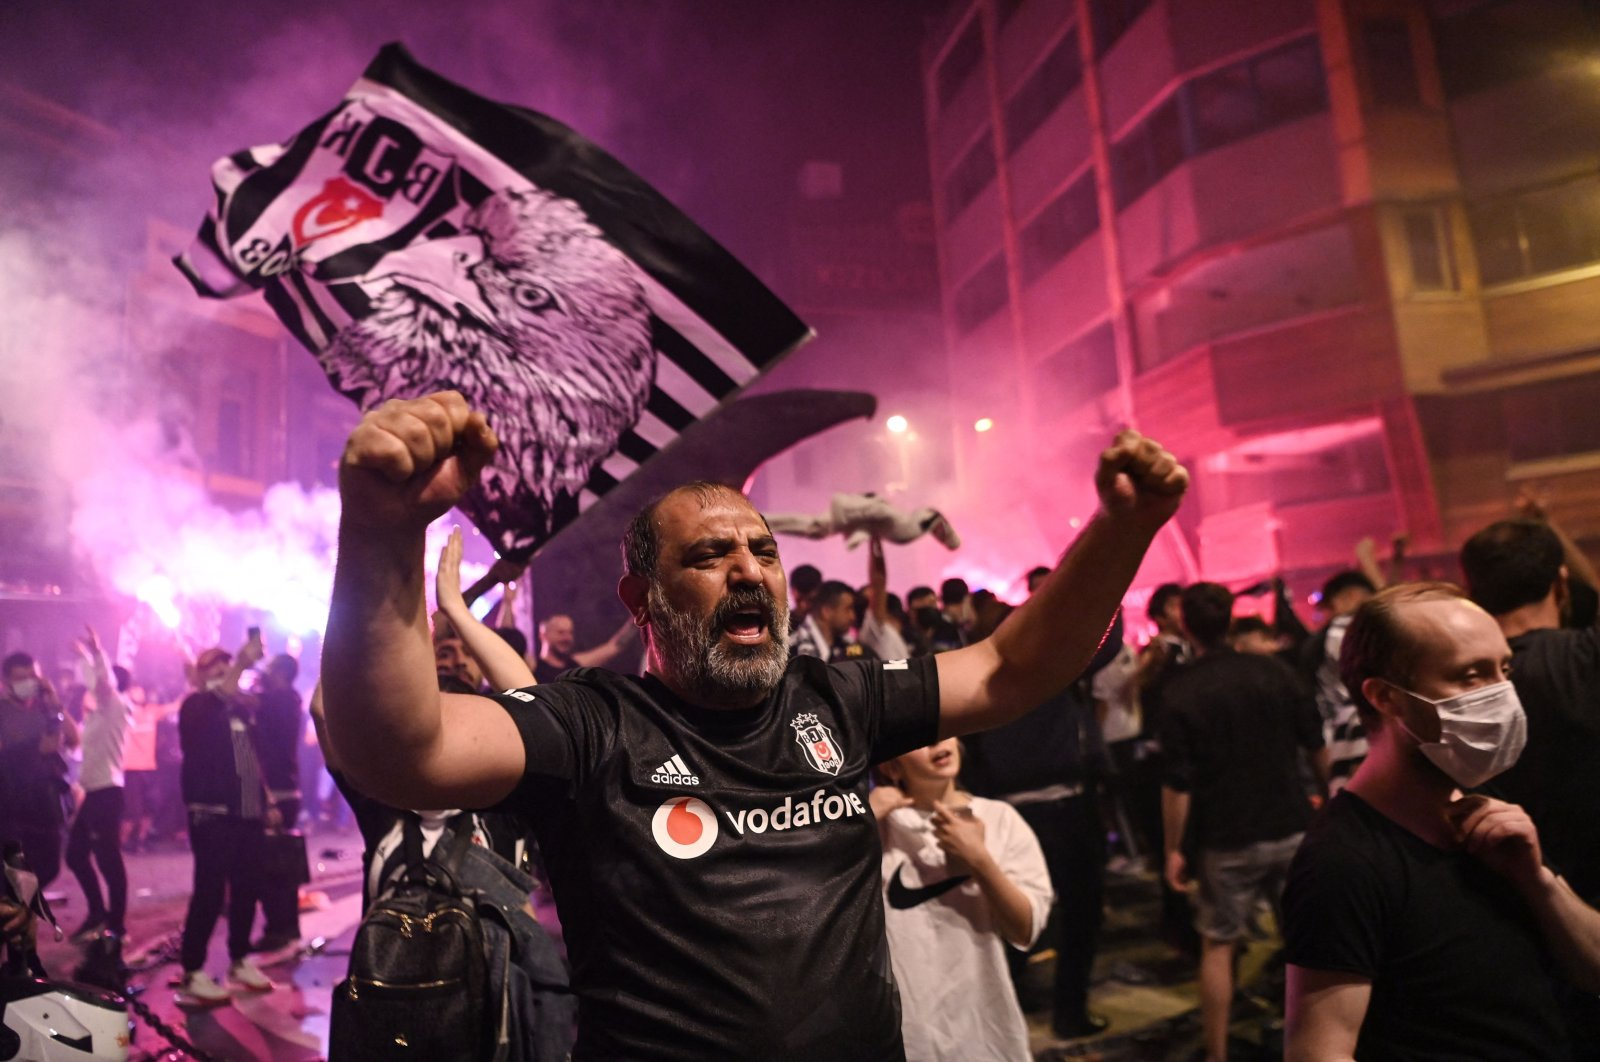 Smoke rises from flares as Beşiktaş' fans celebrate after winning the Turkish Super League Championship after the last match of the season on late May 15, 2021 at Beşiktaş district in Istanbul. (AFP Photo)